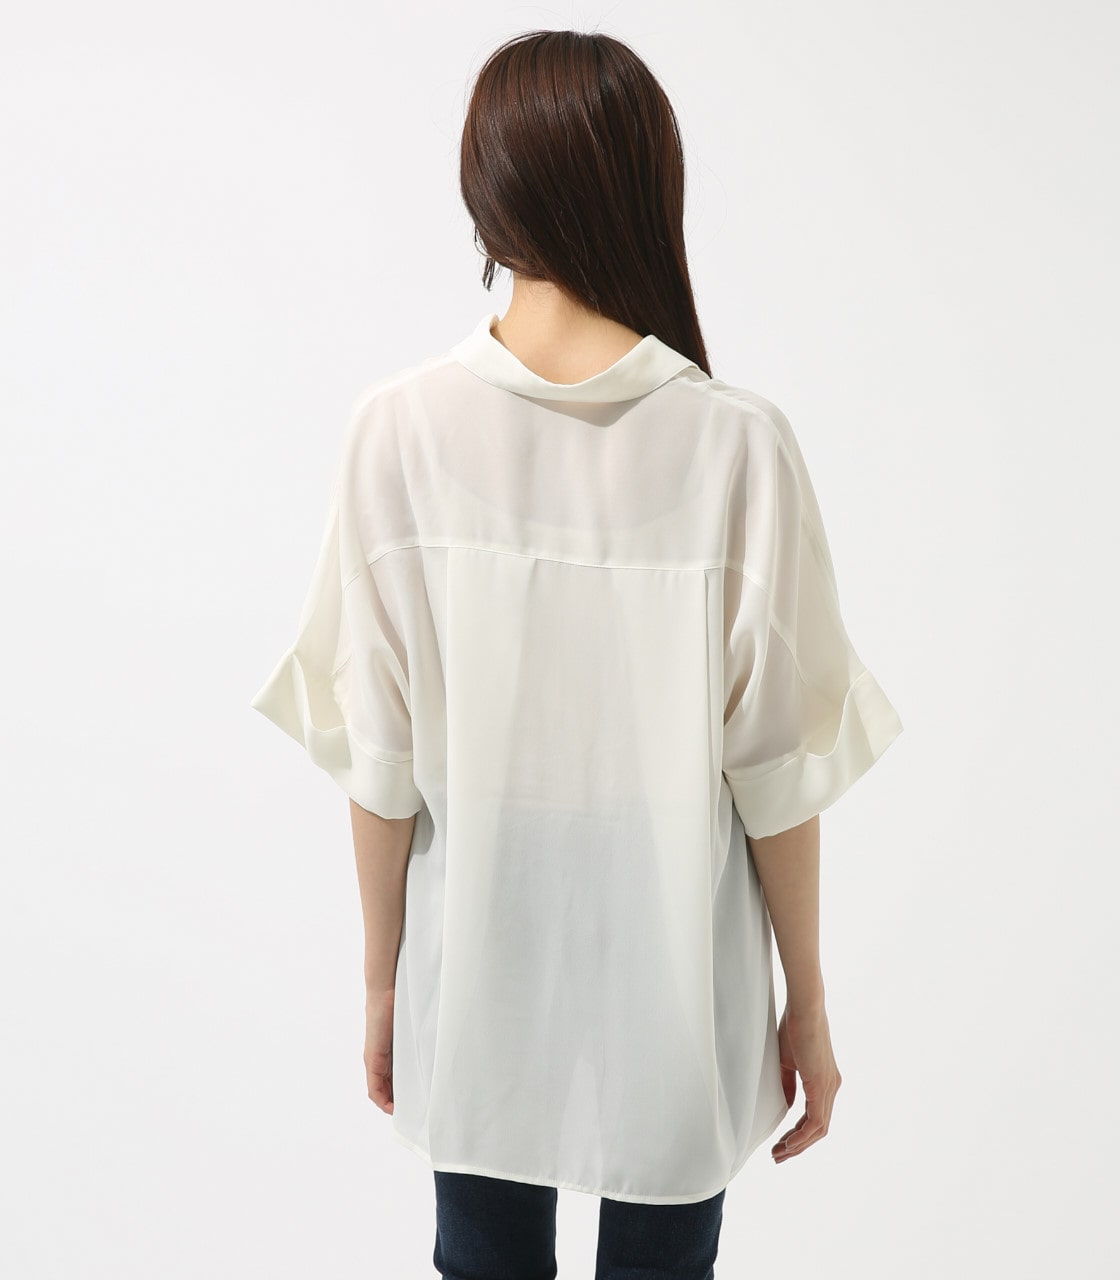 【AZUL BY MOUSSY】ルーズスキッパーシャツ 詳細画像 O/WHT 7